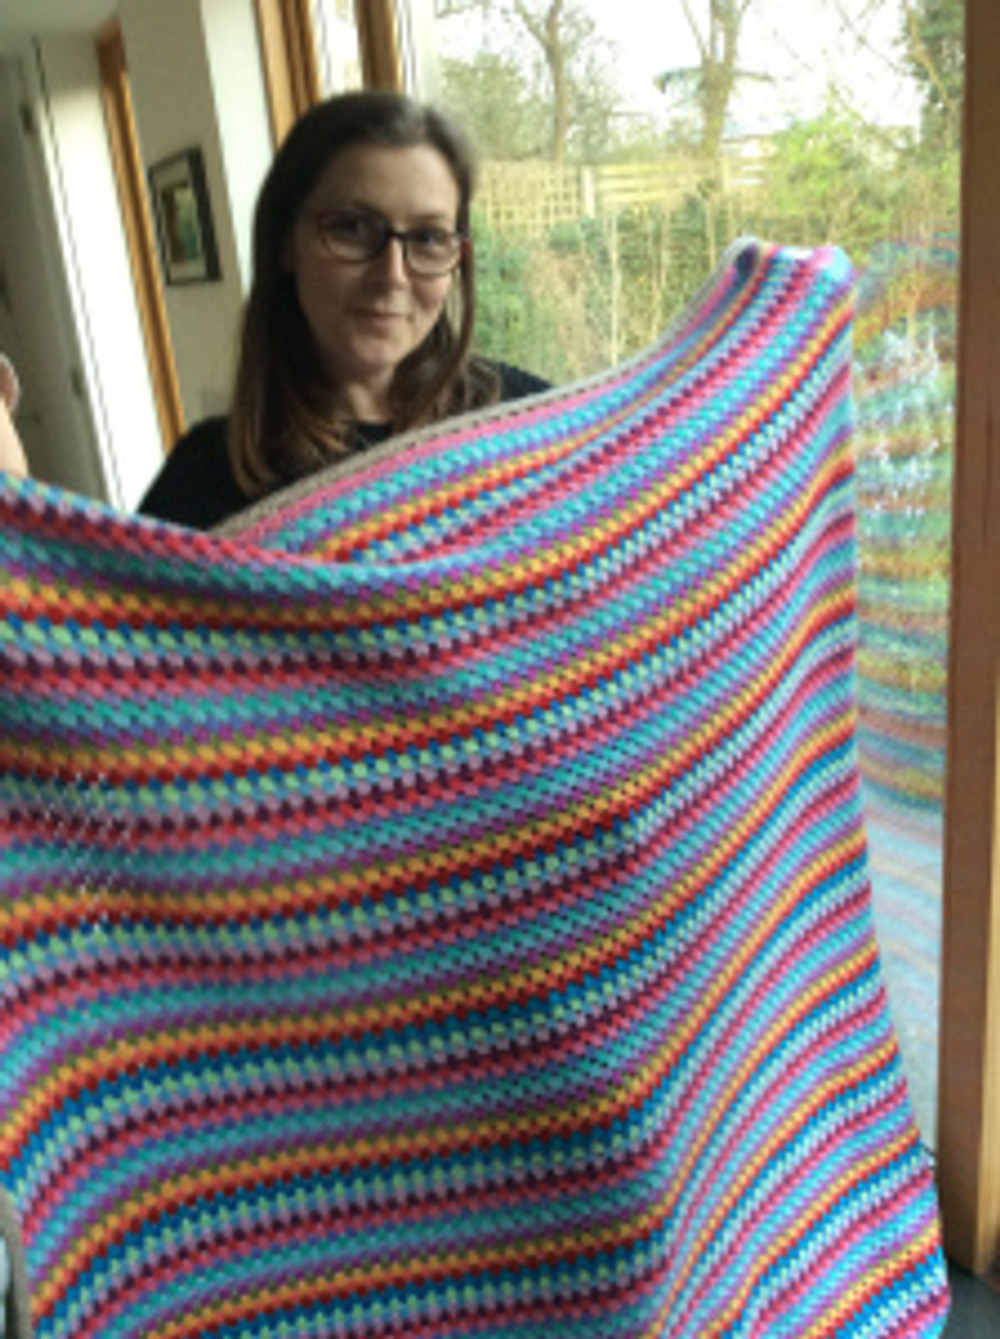 Lucy and her attic 24 blanket